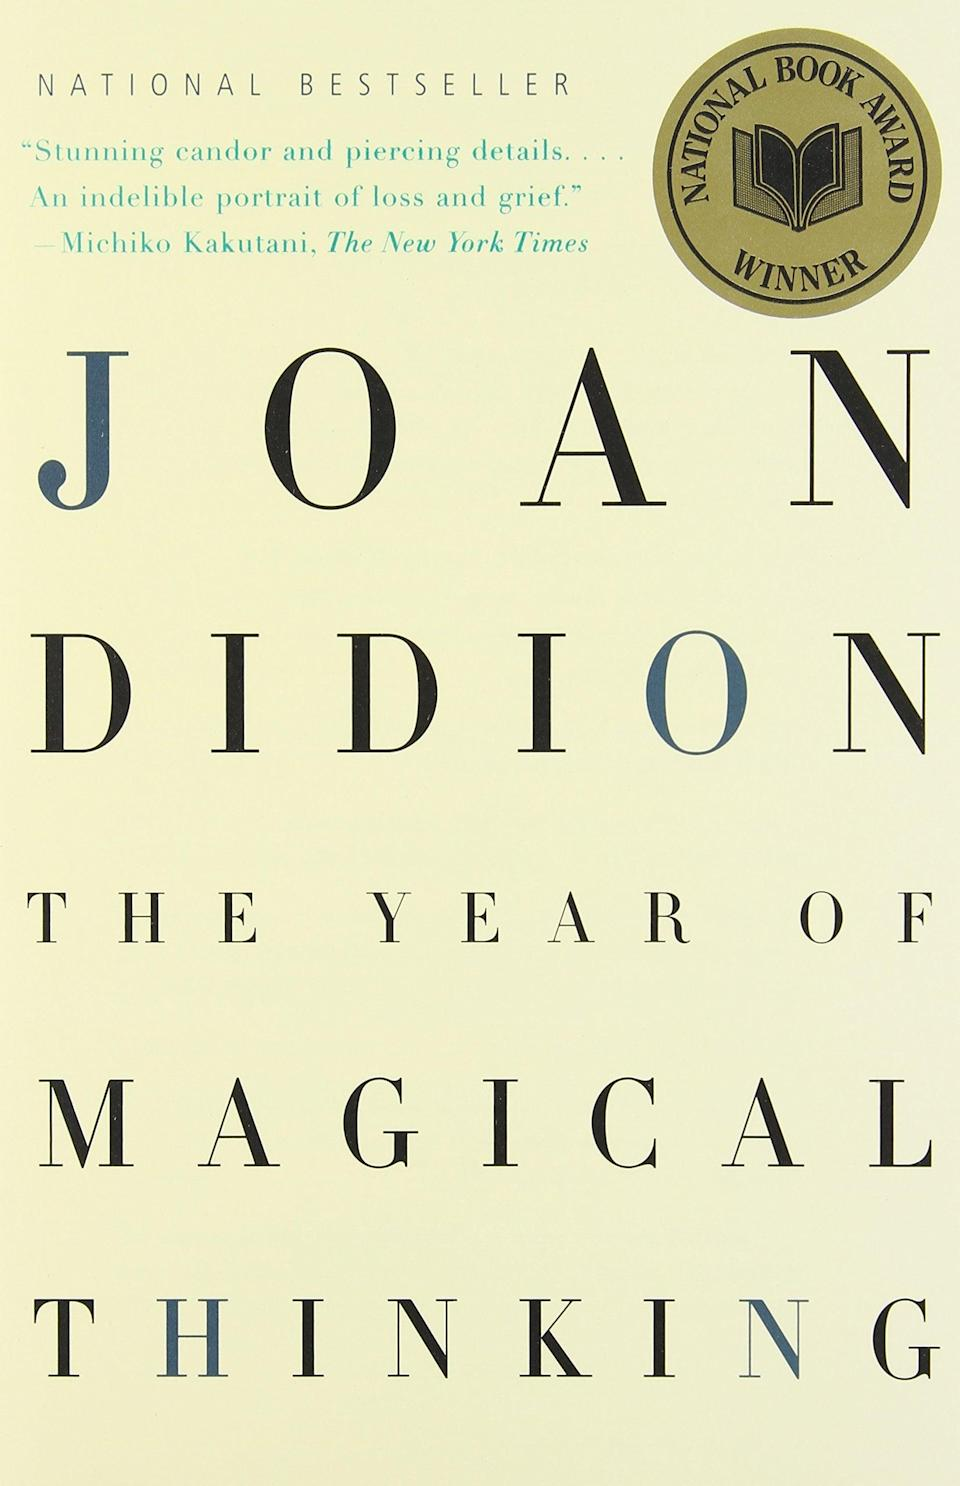 "<p><a href=""https://www.popsugar.com/buy?url=https%3A%2F%2Fwww.amazon.com%2FYear-Magical-Thinking-Joan-Didion%2Fdp%2F140004314X%2Fref%3Dtmm_hrd_swatch_0%3F_encoding%3DUTF8%26qid%3D1488930764%26sr%3D1-1&p_name=%3Cb%3EThe%20Year%20of%20Magical%20Thinking%3C%2Fb%3E%20by%20Joan%20Didion&retailer=amazon.com&evar1=tres%3Auk&evar9=43250262&evar98=https%3A%2F%2Fwww.popsugar.com%2Flove%2Fphoto-gallery%2F43250262%2Fimage%2F43252247%2FYear-Magical-Thinking-Joan-Didion&list1=books%2Cwomen%2Creading%2Cinternational%20womens%20day%2Cwomens%20history%20month&prop13=api&pdata=1"" class=""link rapid-noclick-resp"" rel=""nofollow noopener"" target=""_blank"" data-ylk=""slk:The Year of Magical Thinking by Joan Didion""><b>The Year of Magical Thinking</b> by Joan Didion</a> </p>"